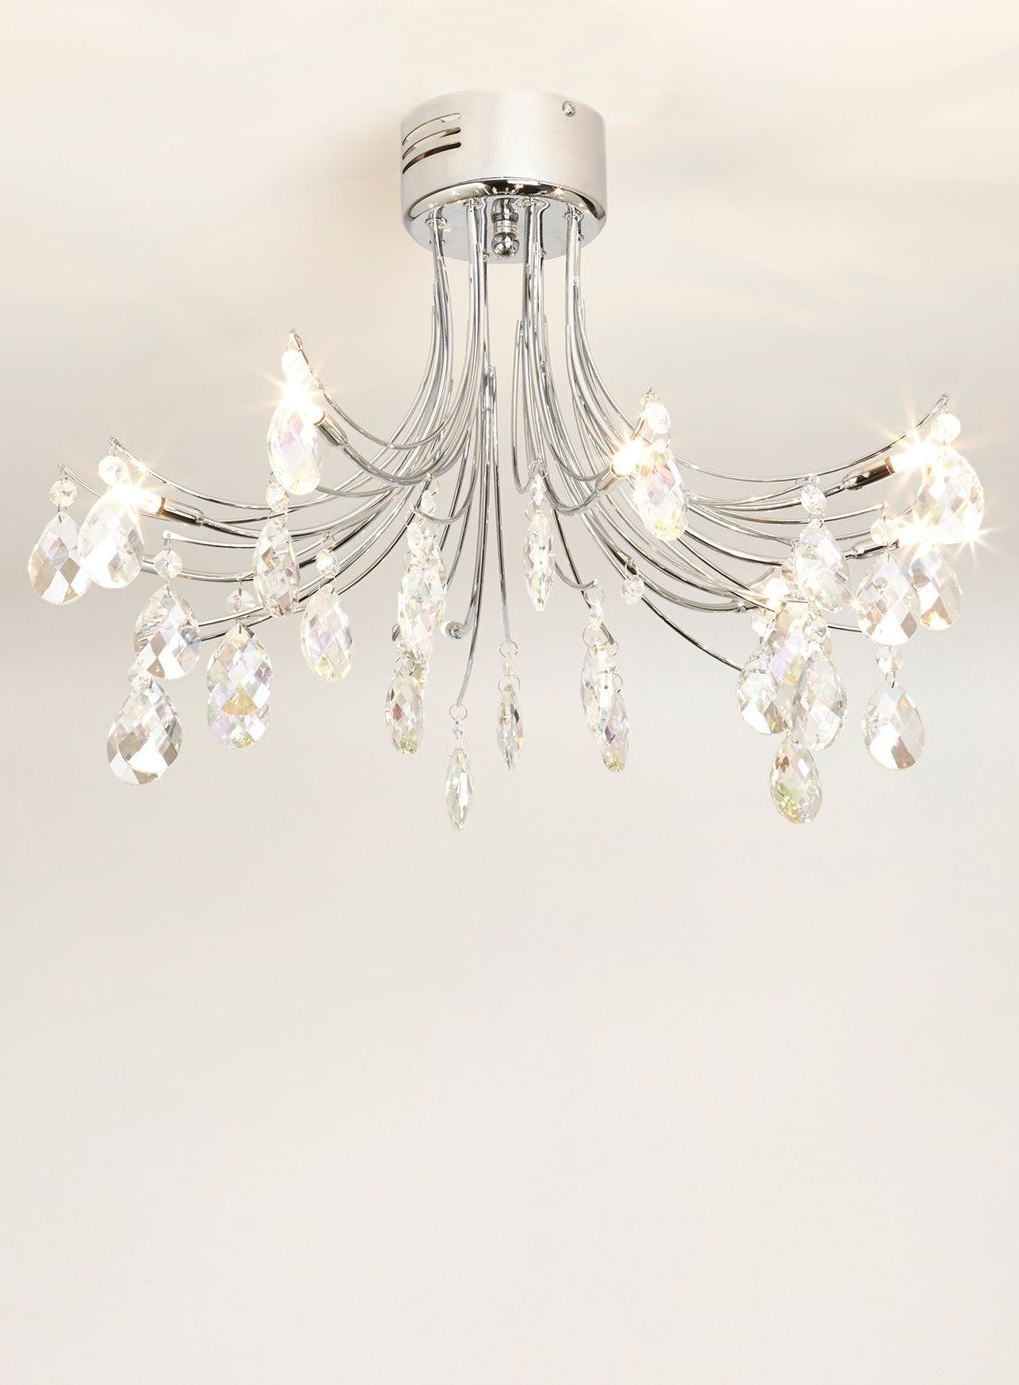 Chrome Ina Flush Ceiling Light Fitting – Bhs (View 13 of 15)